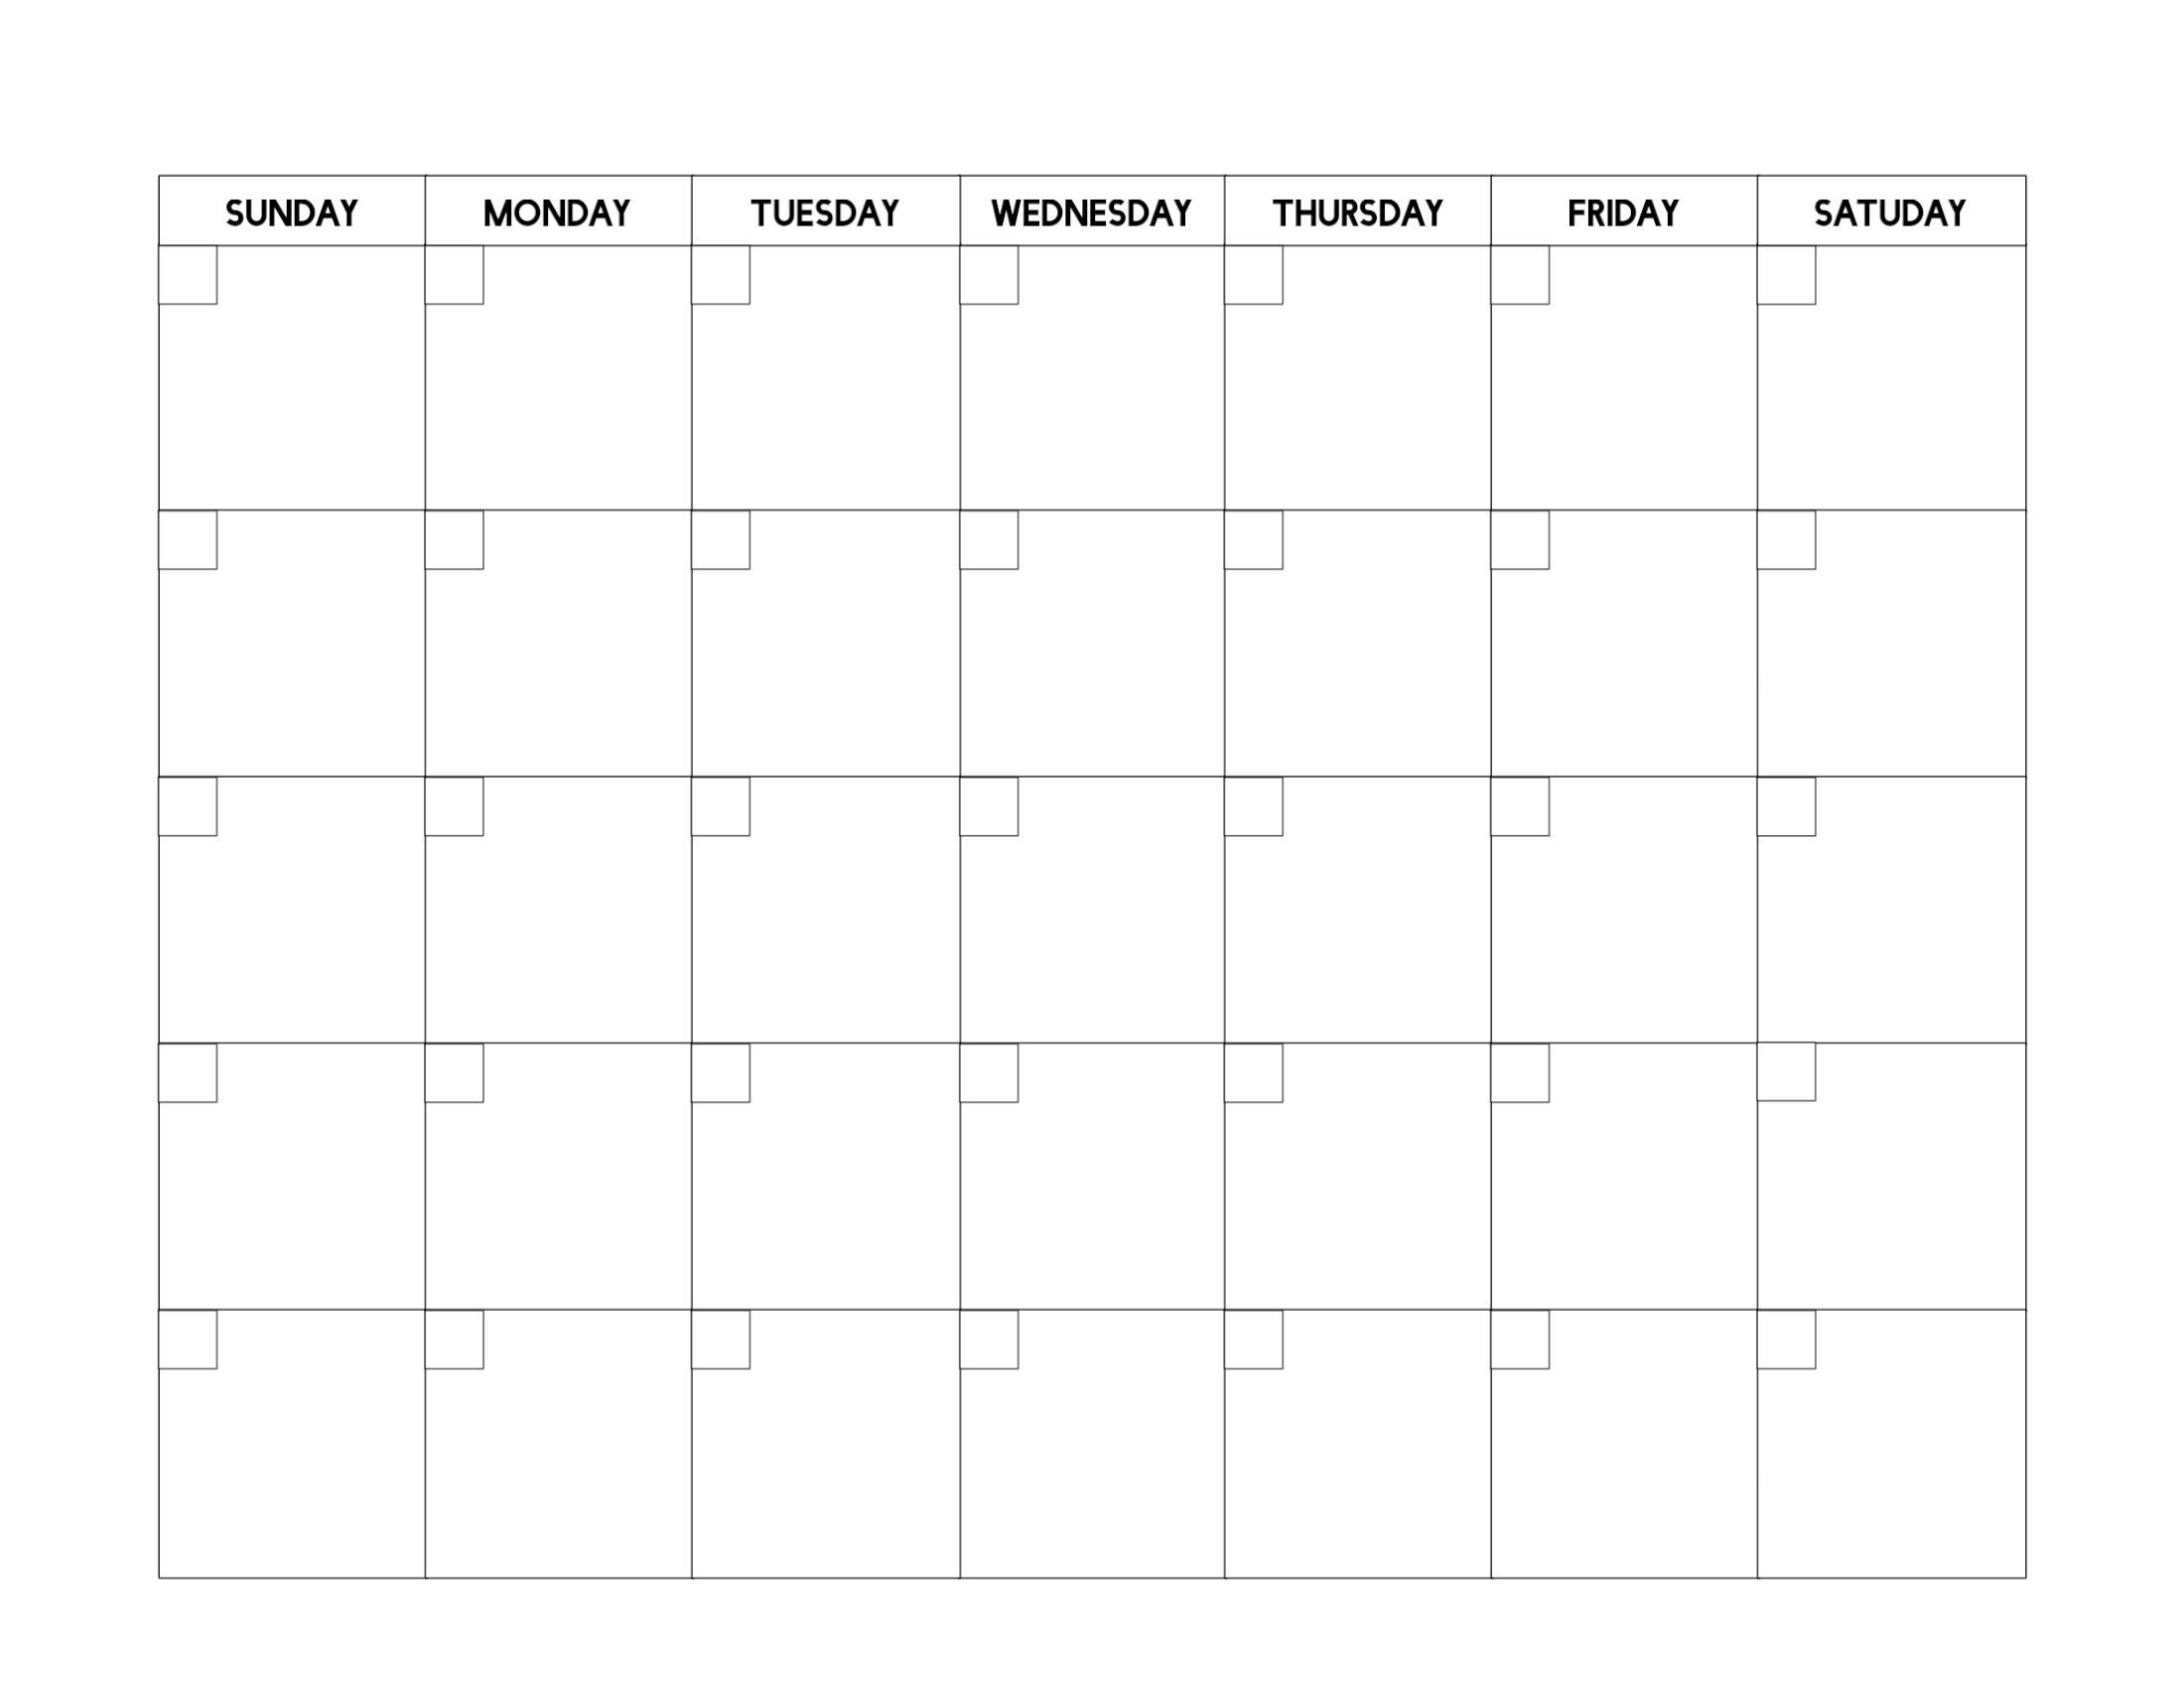 Free Printable Blank Calendar Template - Paper Trail Design-Printable Blank Calendar Template With Notes